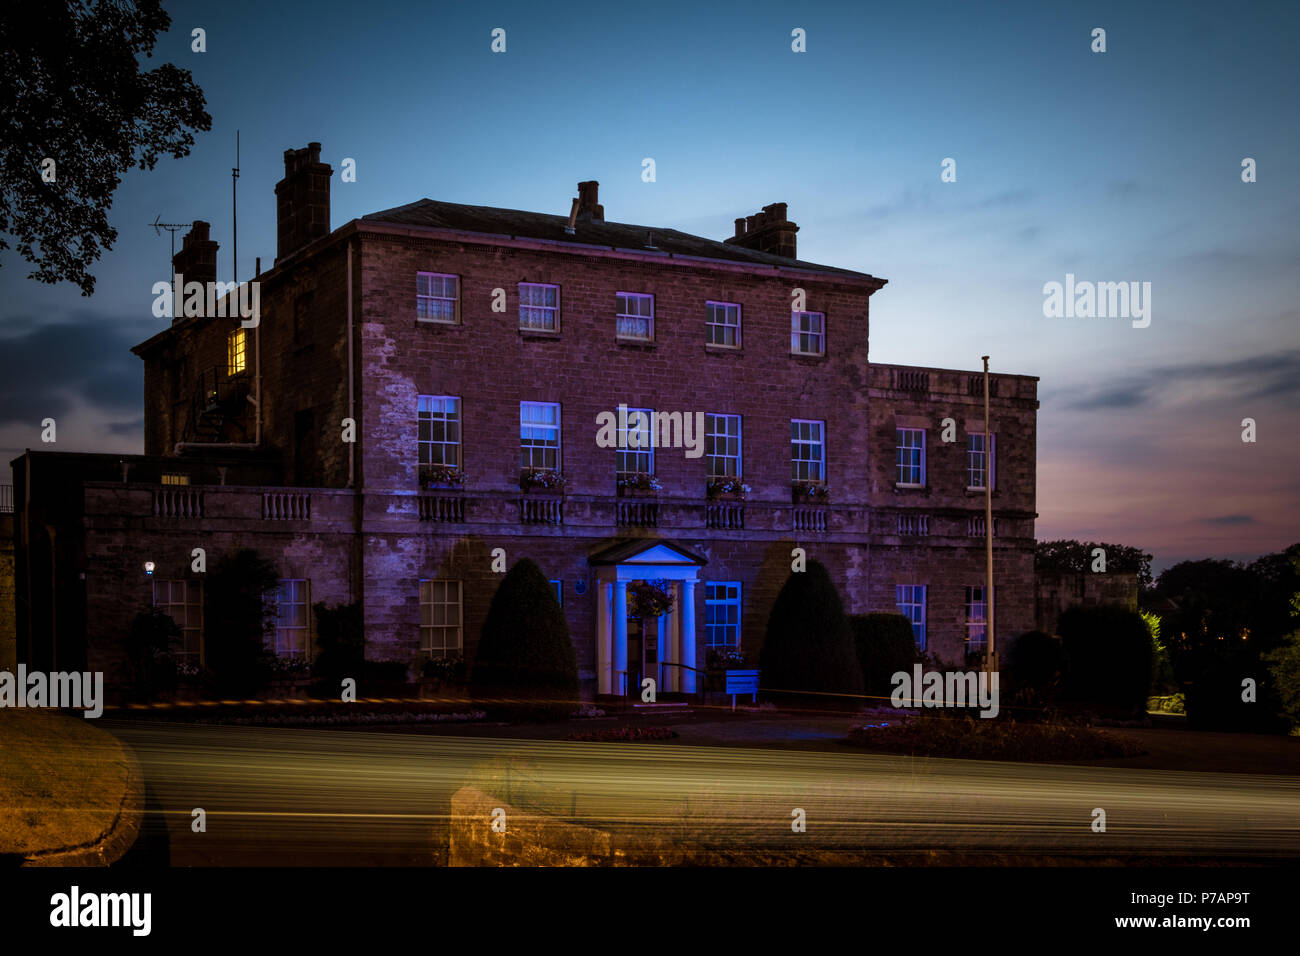 Knaresborough House, Knaresborough, North Yorkshire, UK - 5 July 2018: Knaresborough House in Knaresborough, North Yorkshire, UK, lit up in blue to celebrate the 70th birthday of the NHS. Caught Light Photography/Alamy Live News - Stock Image